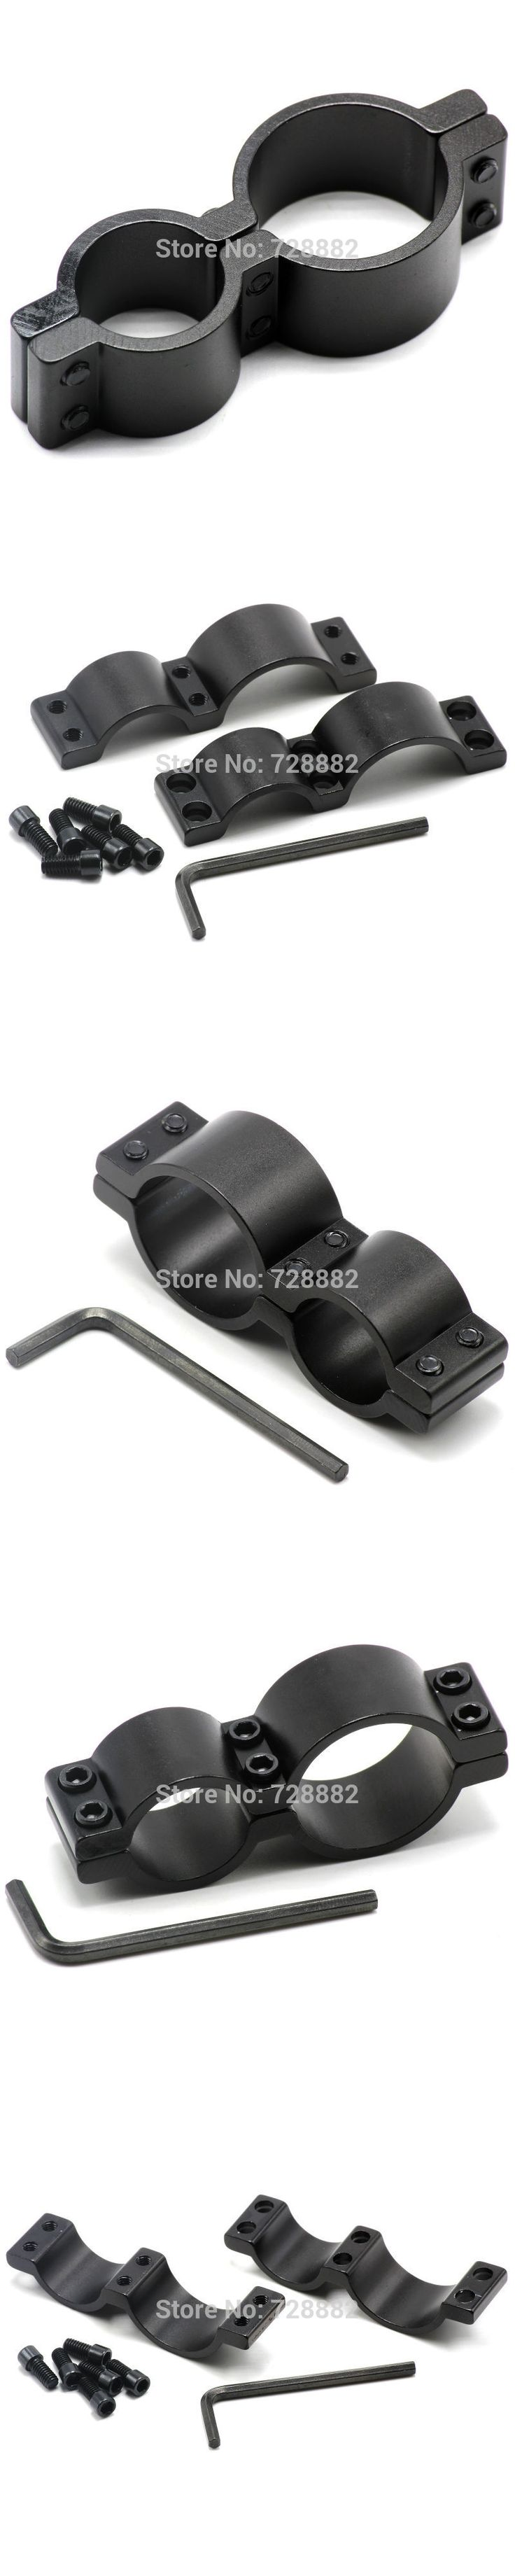 Tactical Scope Mounts QQ 25.4mm Ring 19mm Little Scope Rings Flashlight Laser Mounts Hunting Accessories